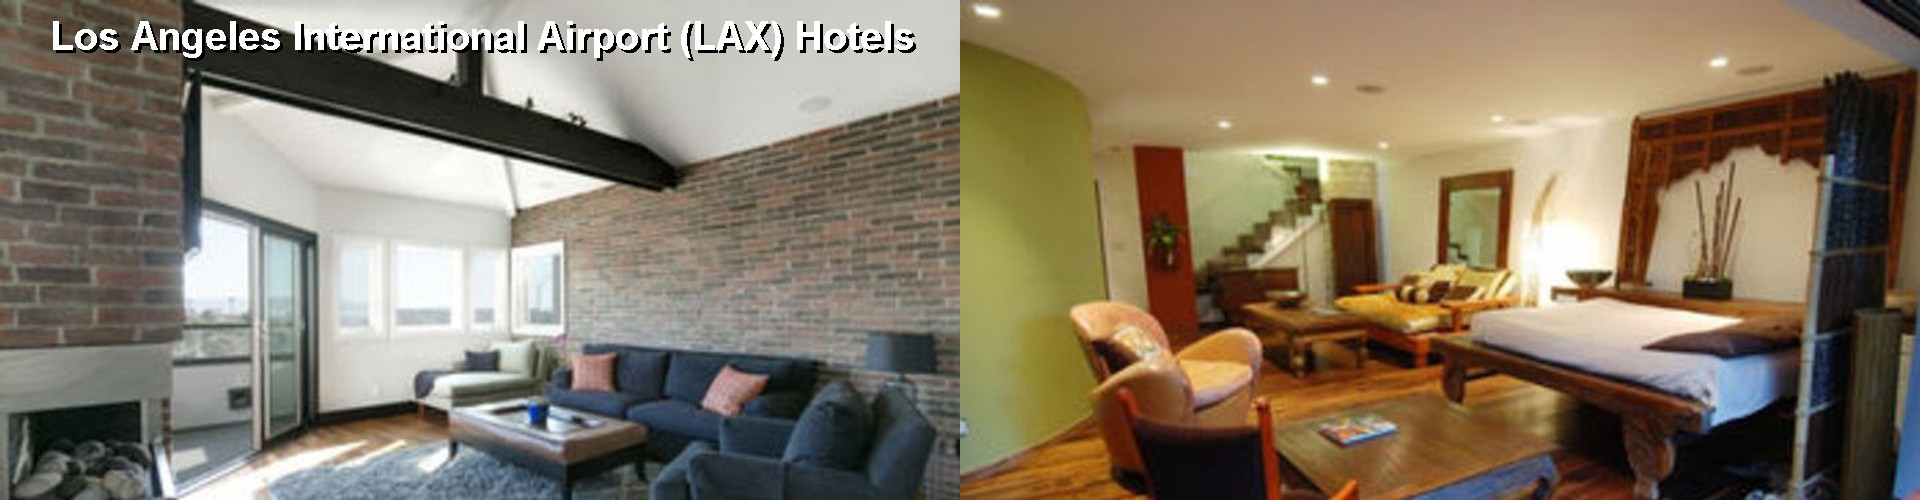 5 Best Hotels near Los Angeles International Airport (LAX)